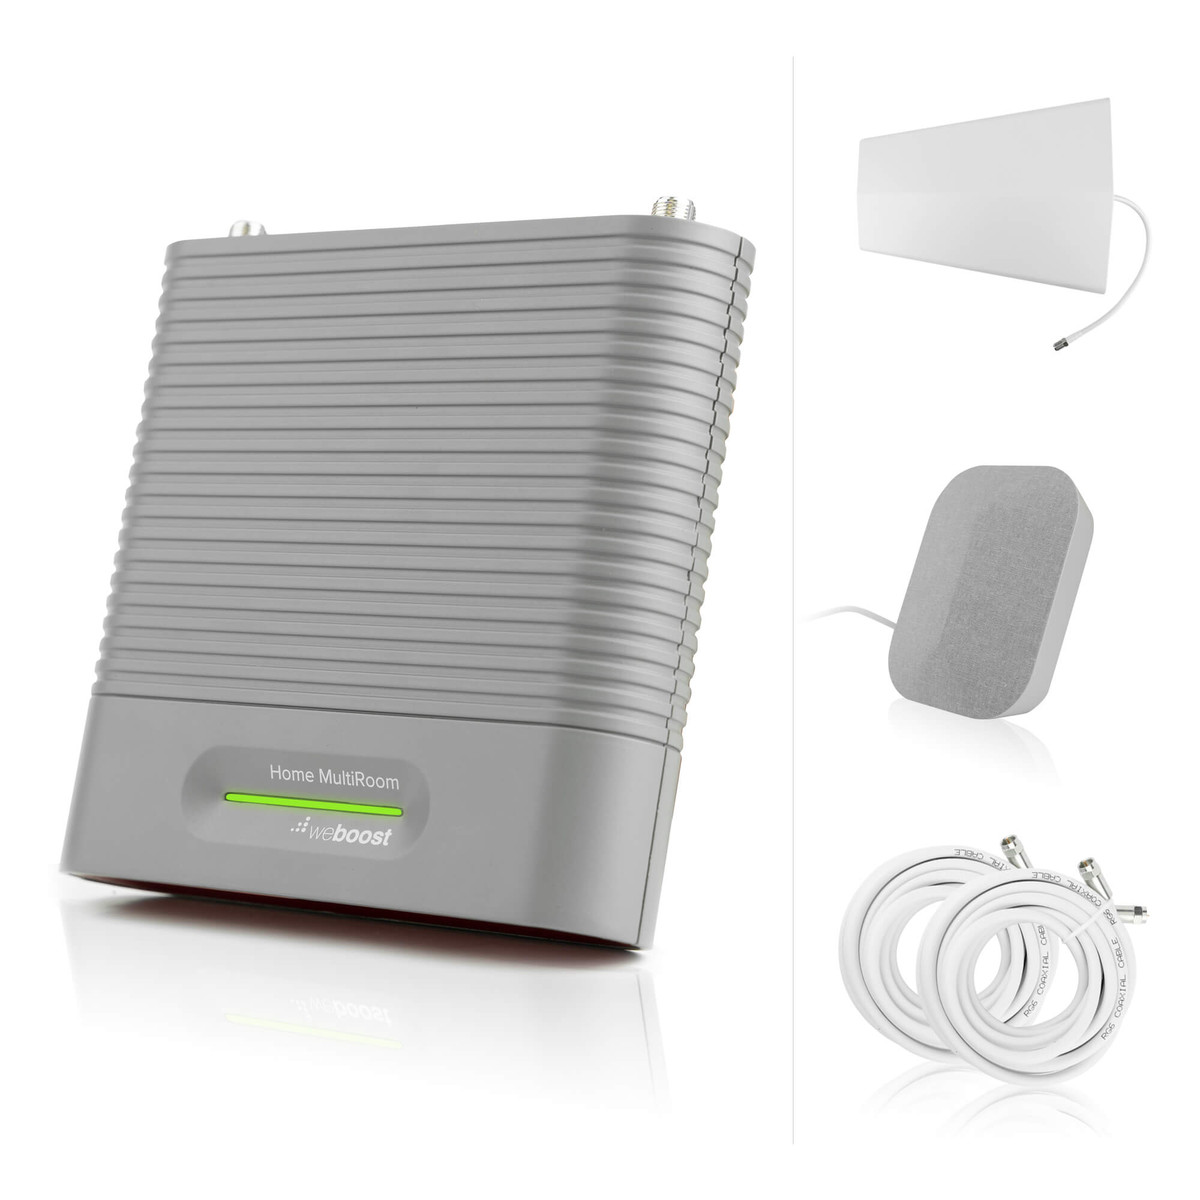 weBoost Home MultiRoom Cell Phone Signal Booster Kit | 470144